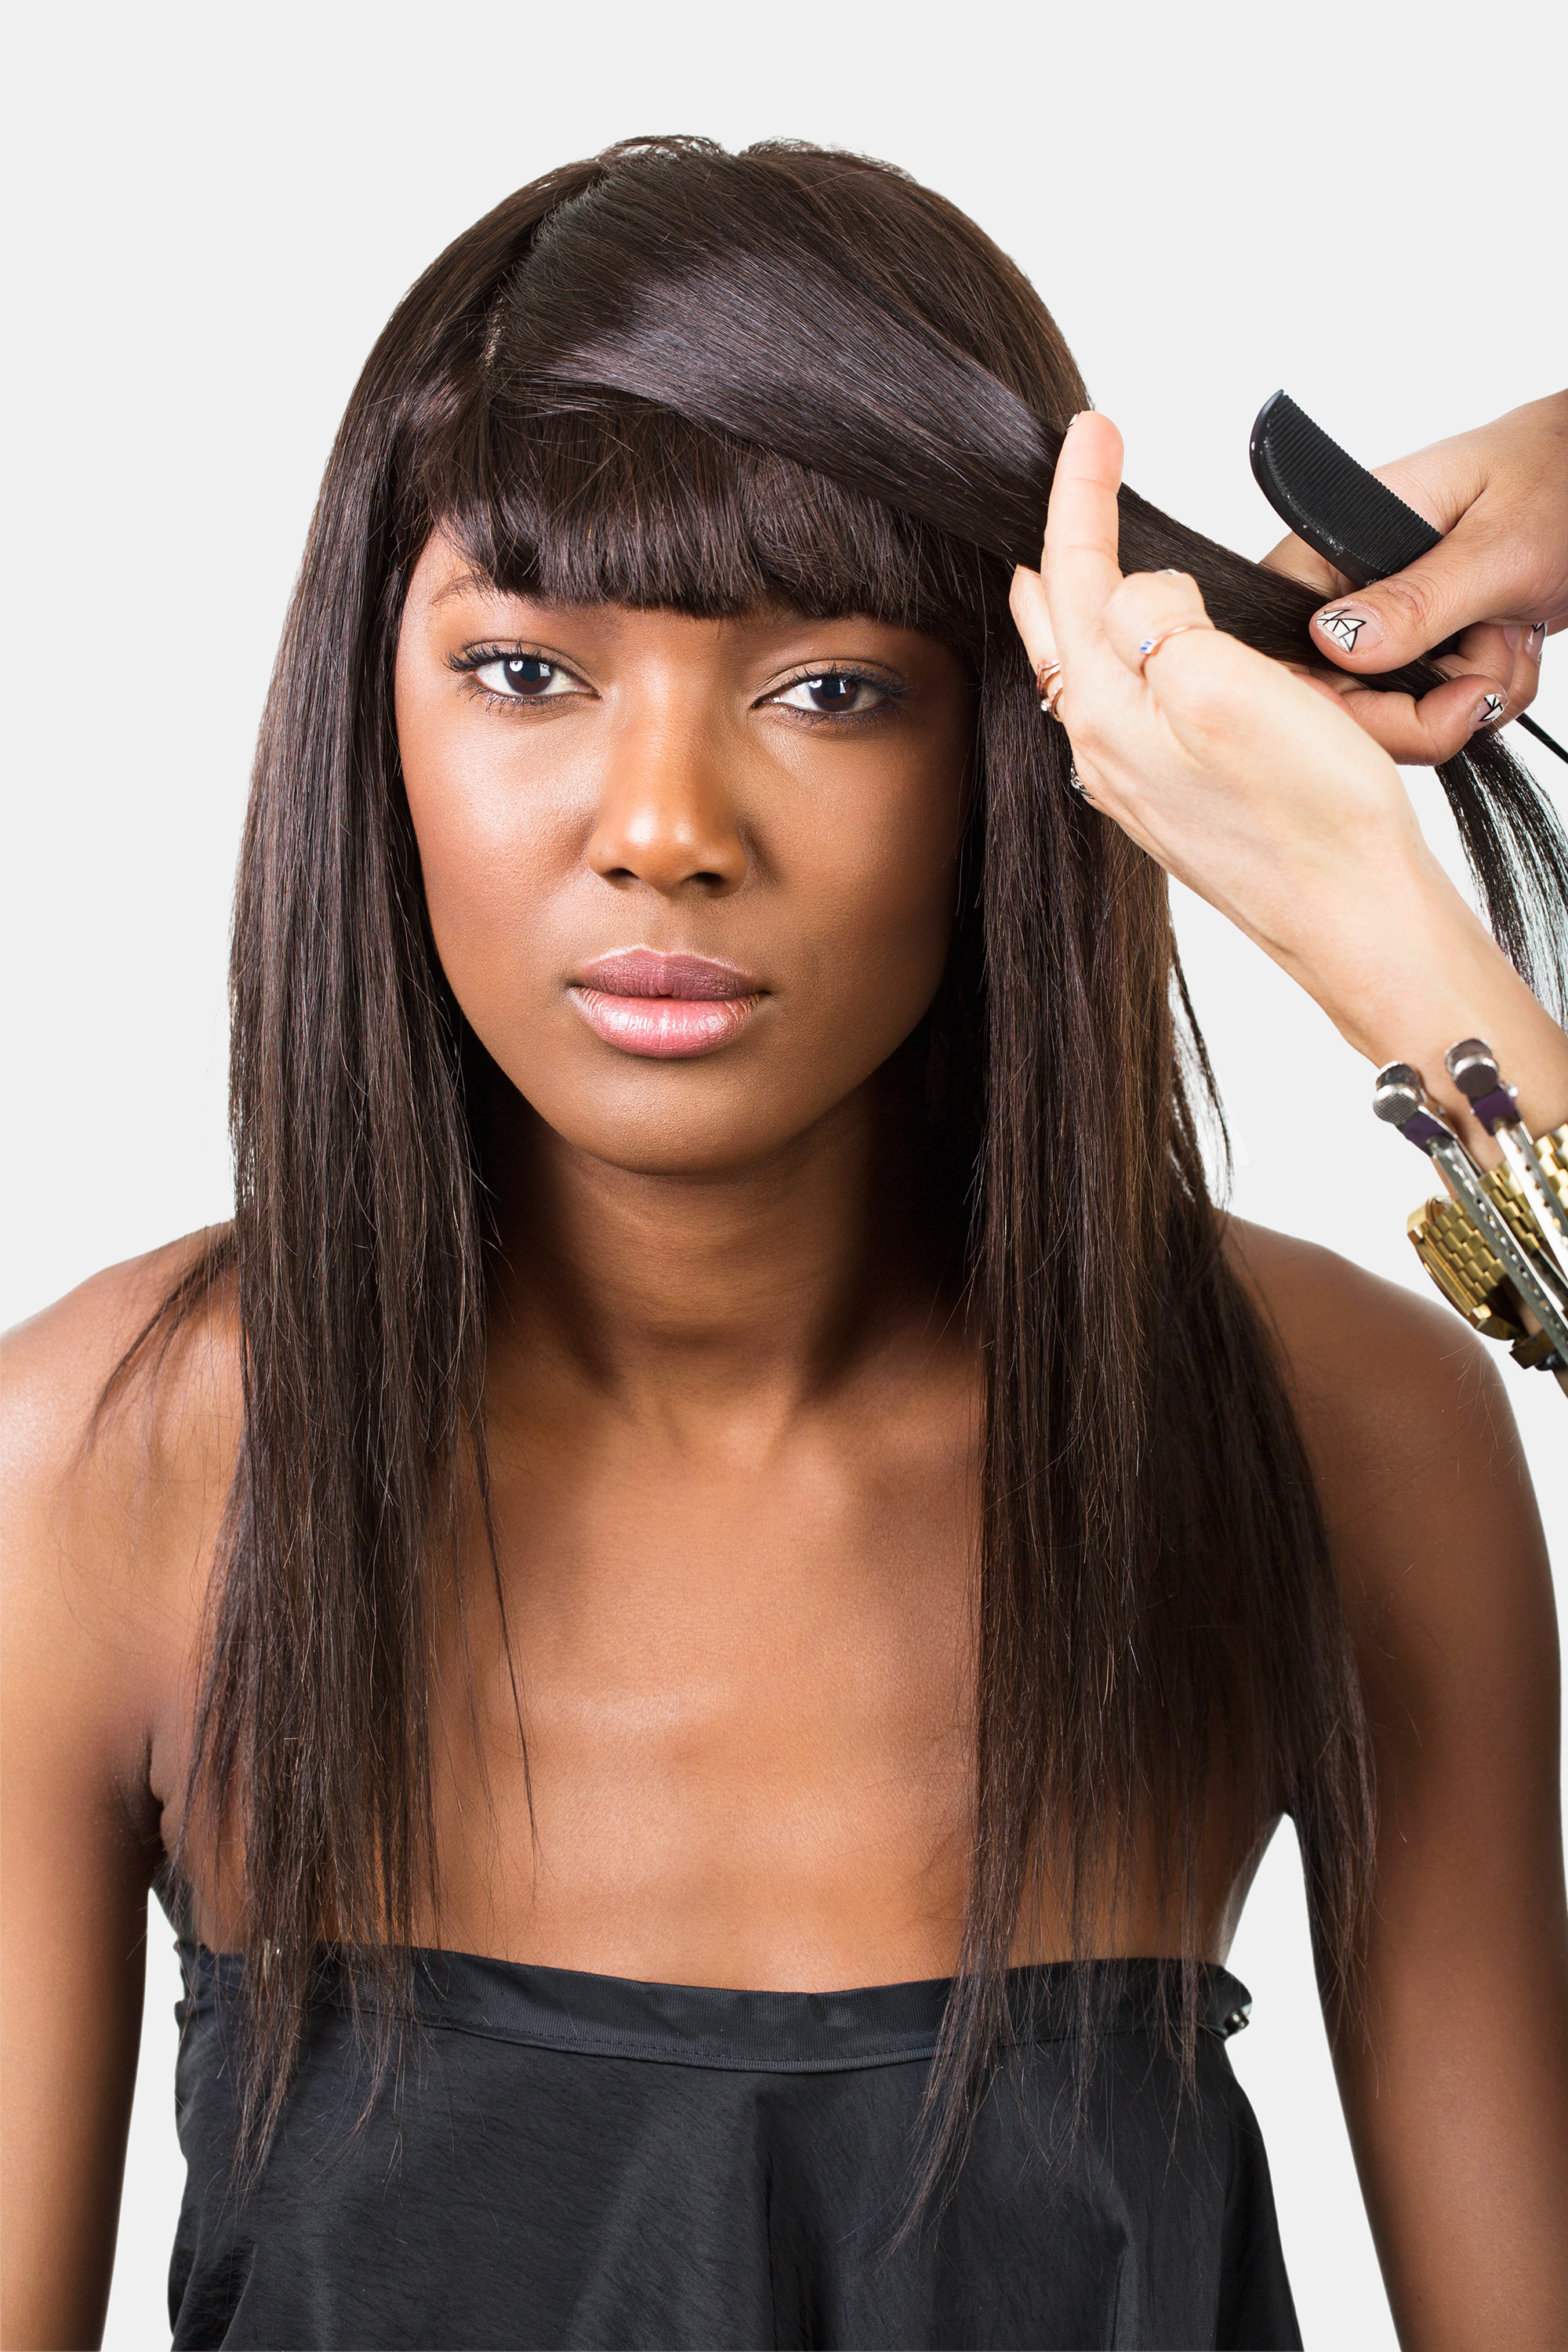 Outstanding How To Style Bangs 5 Hairstyles To Keep Your Bangs Out Of Your Face Short Hairstyles For Black Women Fulllsitofus